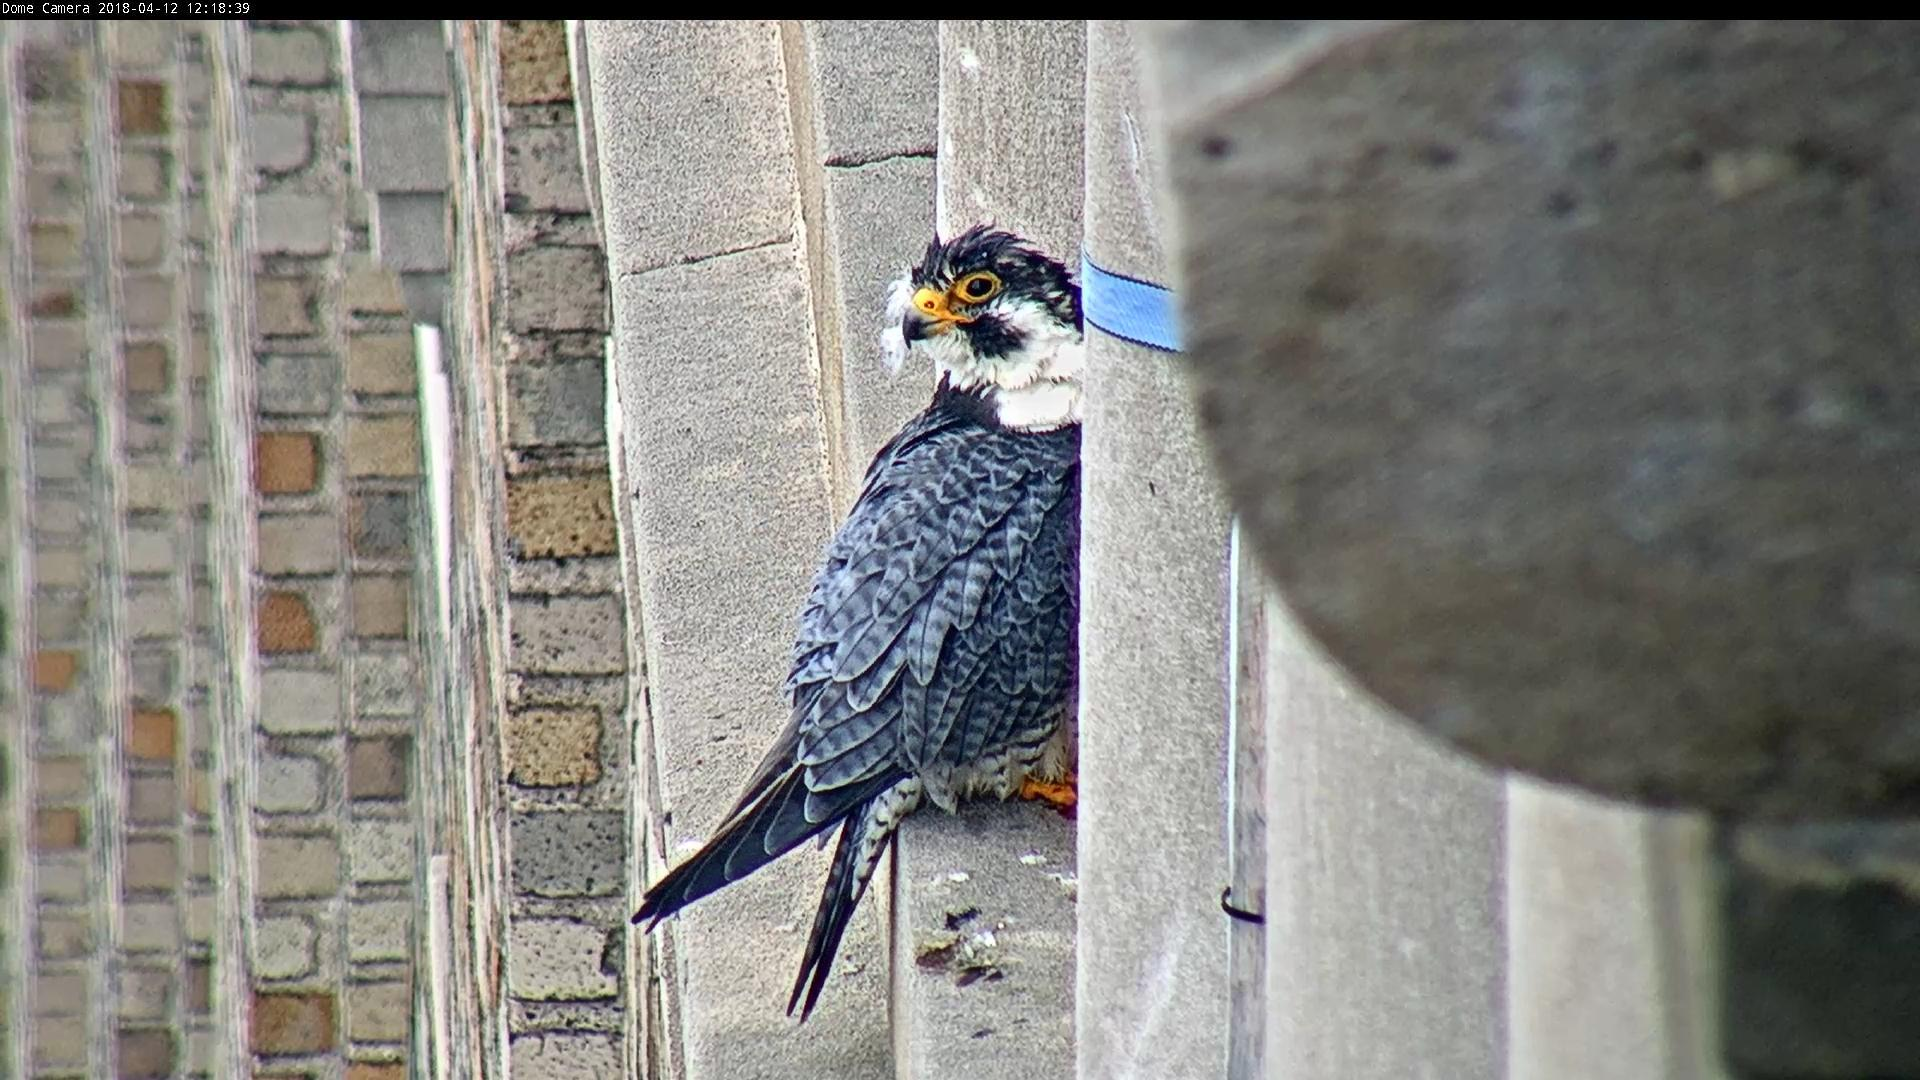 Ares got very wet and preened on one of the pillars west of the box